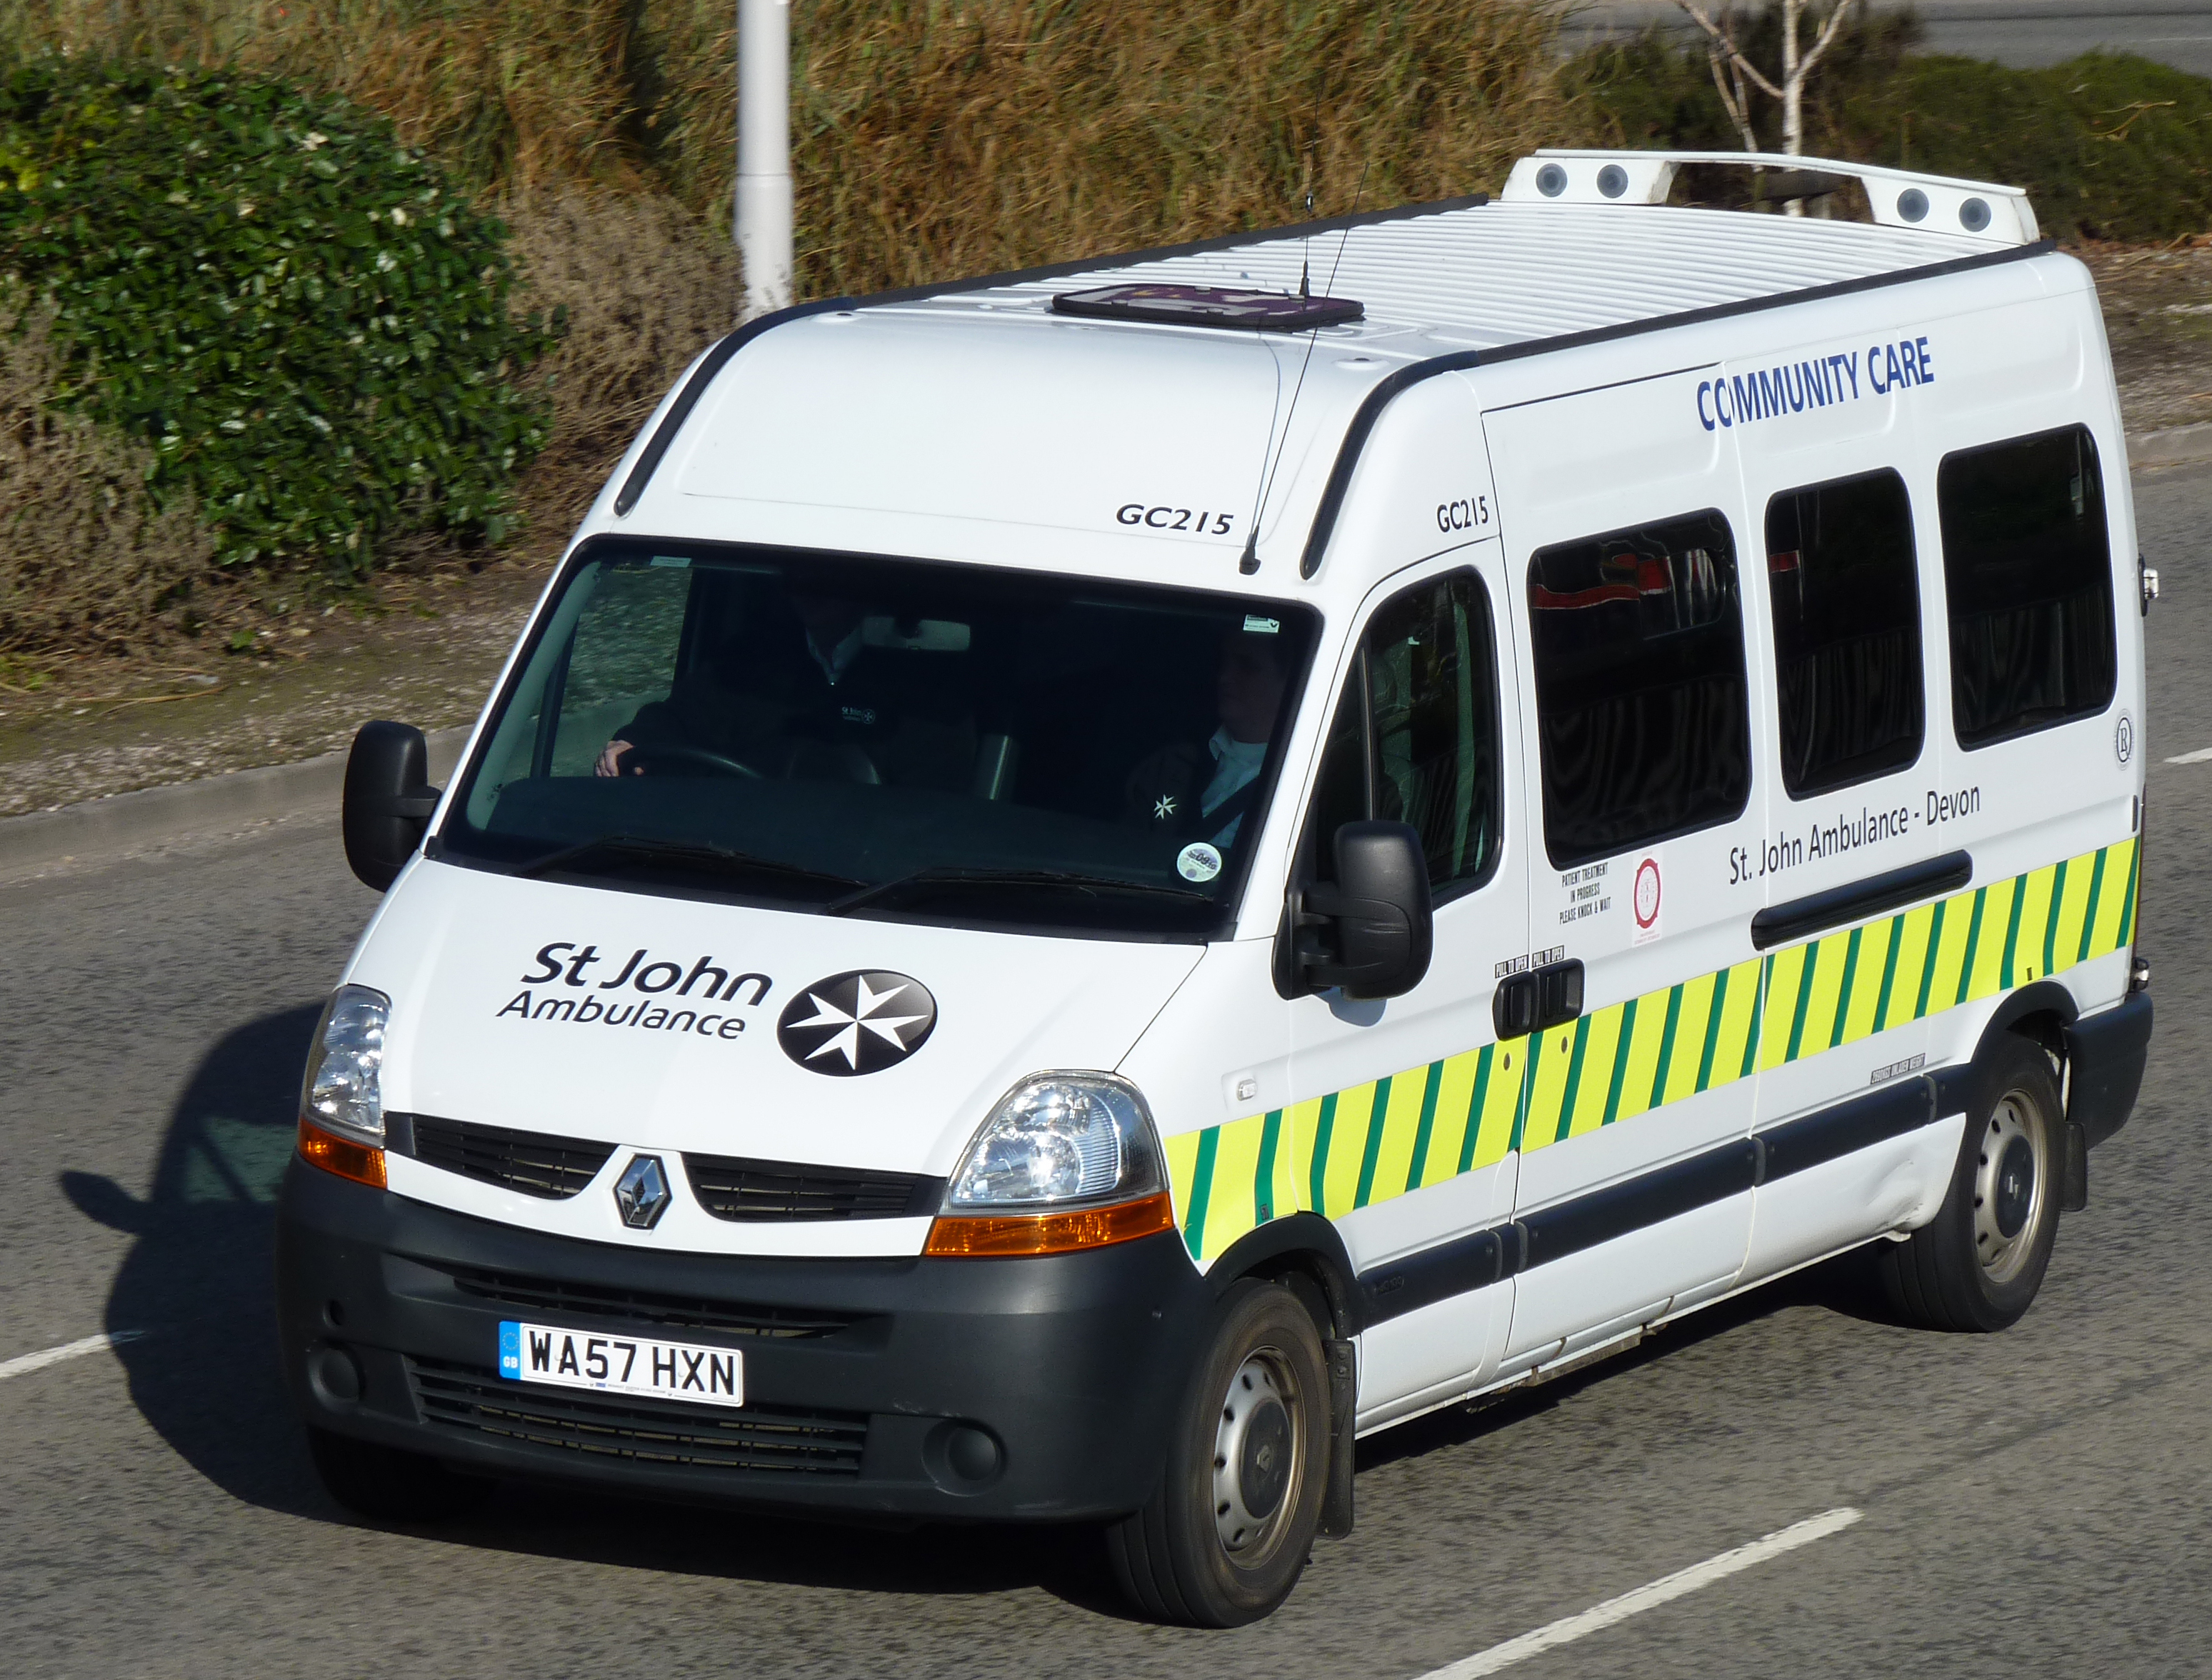 File St John Ambulance Wa57hxn Jpg Wikimedia Commons